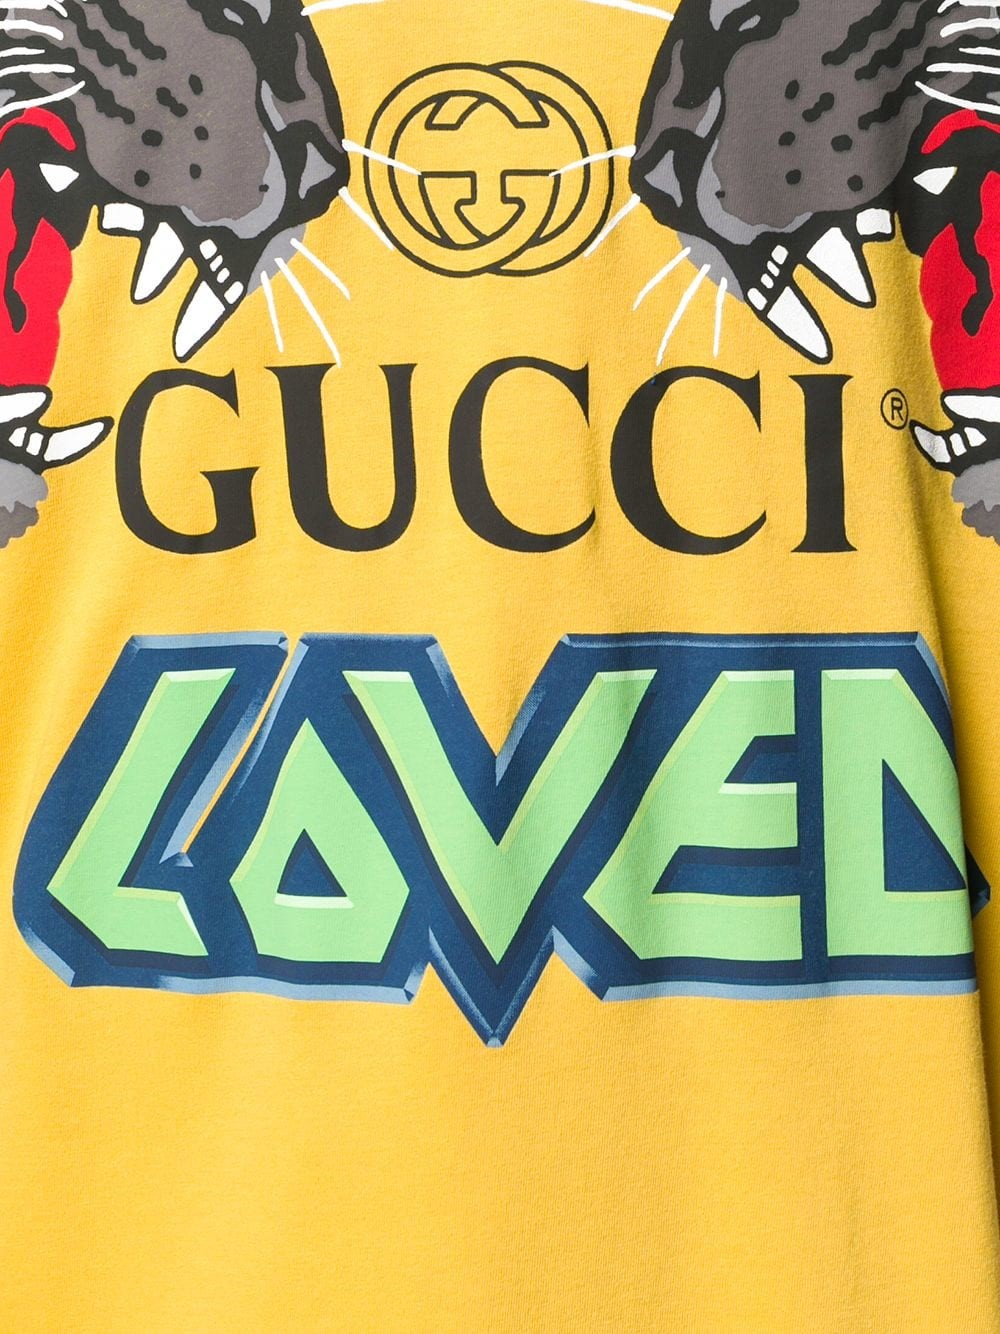 591fffde gucci LOVED T-SHIRT available on montiboutique.com - 27199